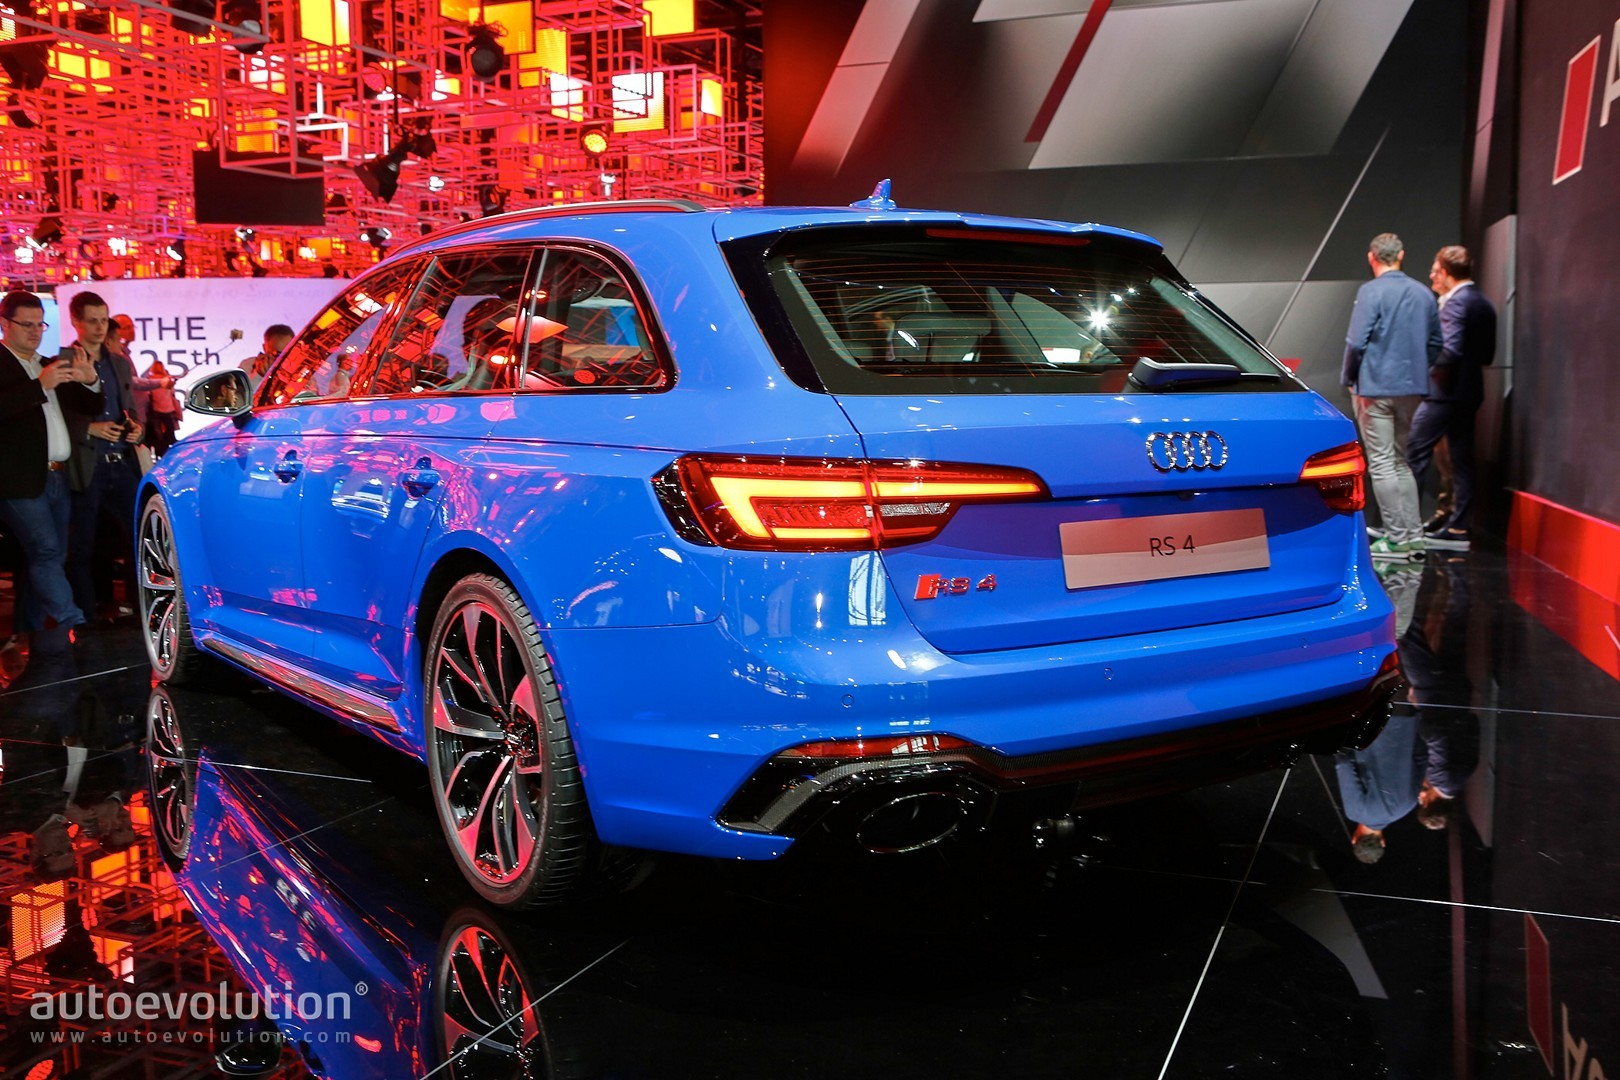 The New 450 HP Audi RS4 Avant Does 0-100 KM/H in 4.1 Seconds - autoevolution